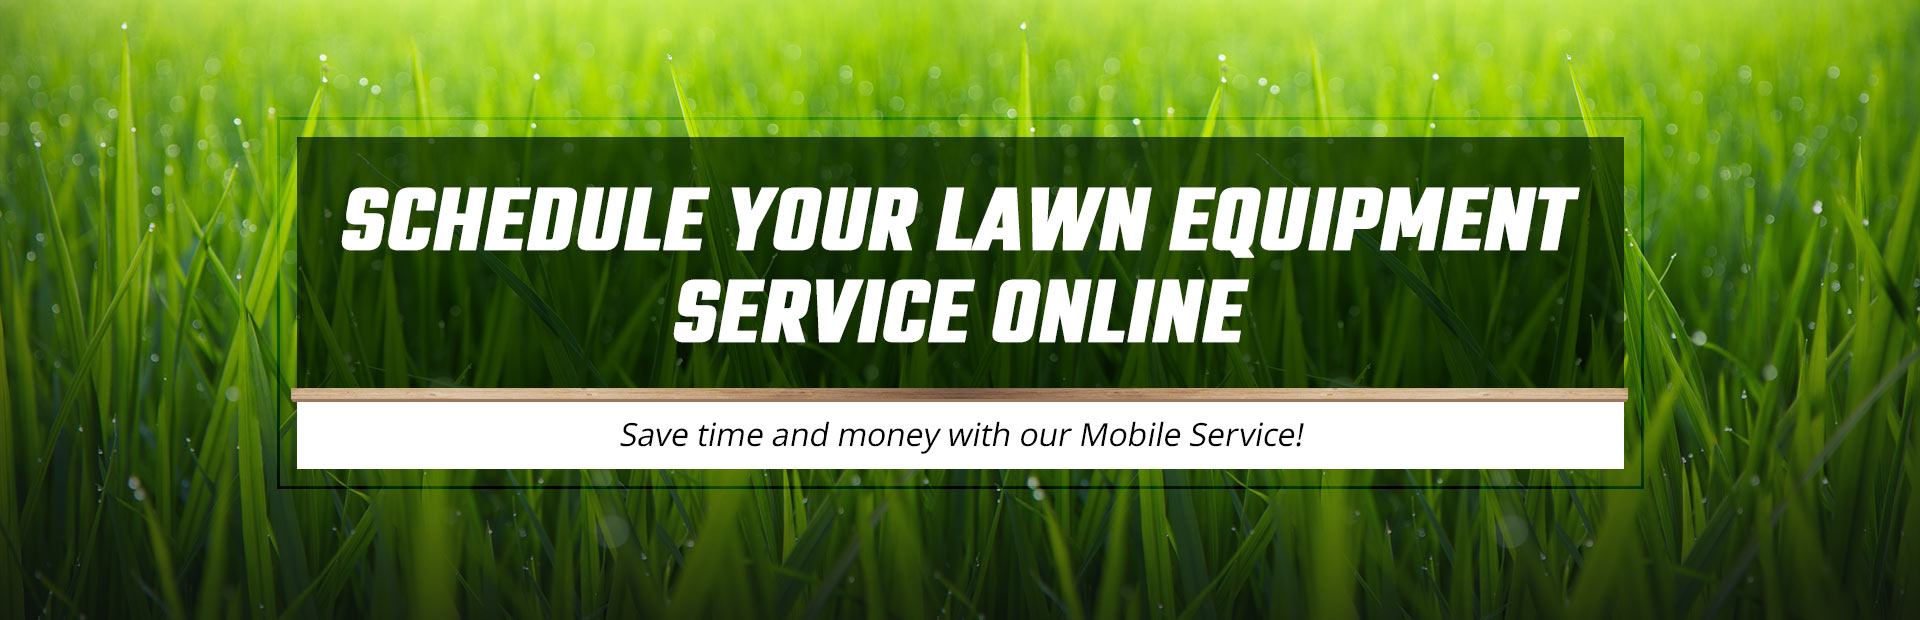 Schedule your lawn equipment service online! Save time and money with our Mobile Service!